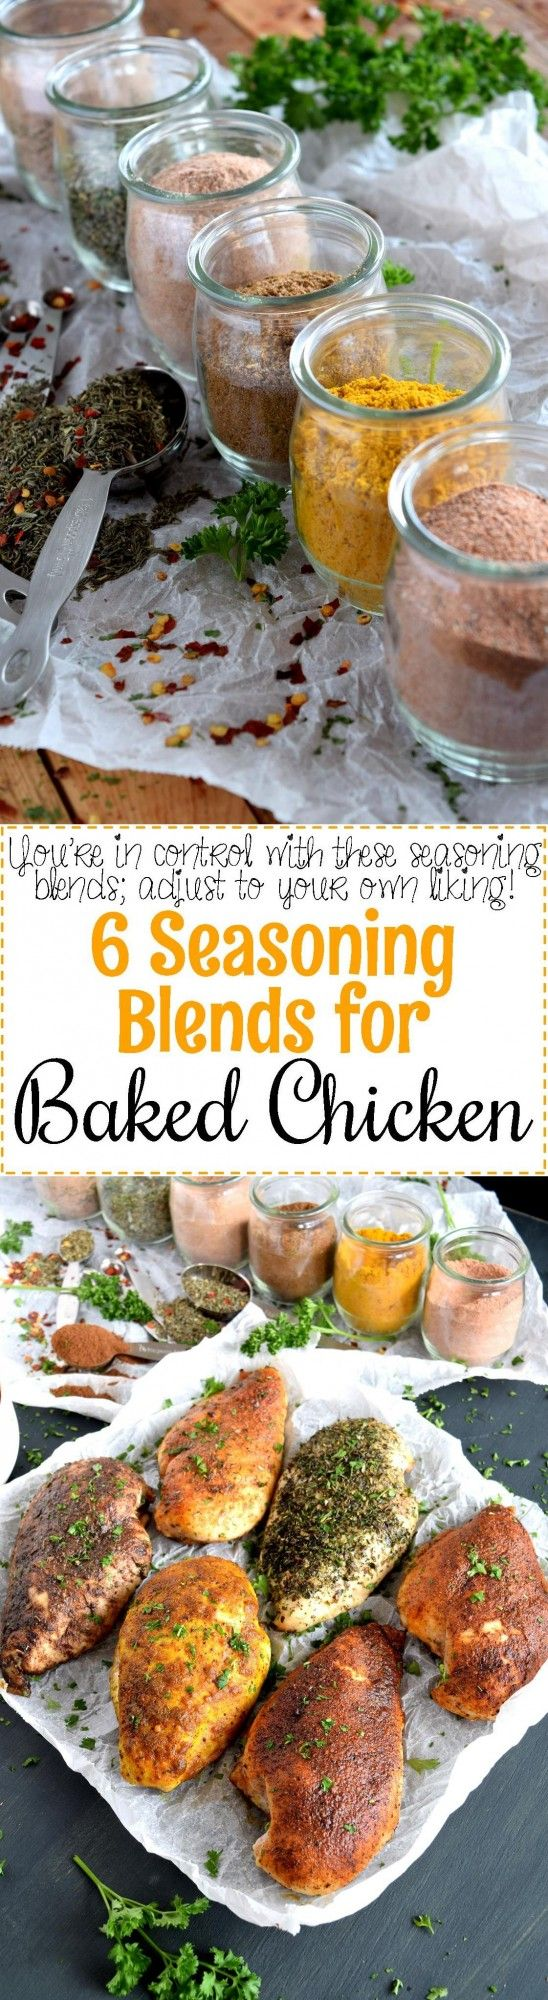 Plain baked chicken is a thing of the past!  Jazz up your baked or grilled chicken with these 6 Seasoning Blends!  Pick your favourite – Cajun, Italian, Southwest, Jerk, Curry, or BBQ! I had so much fun with this particular…